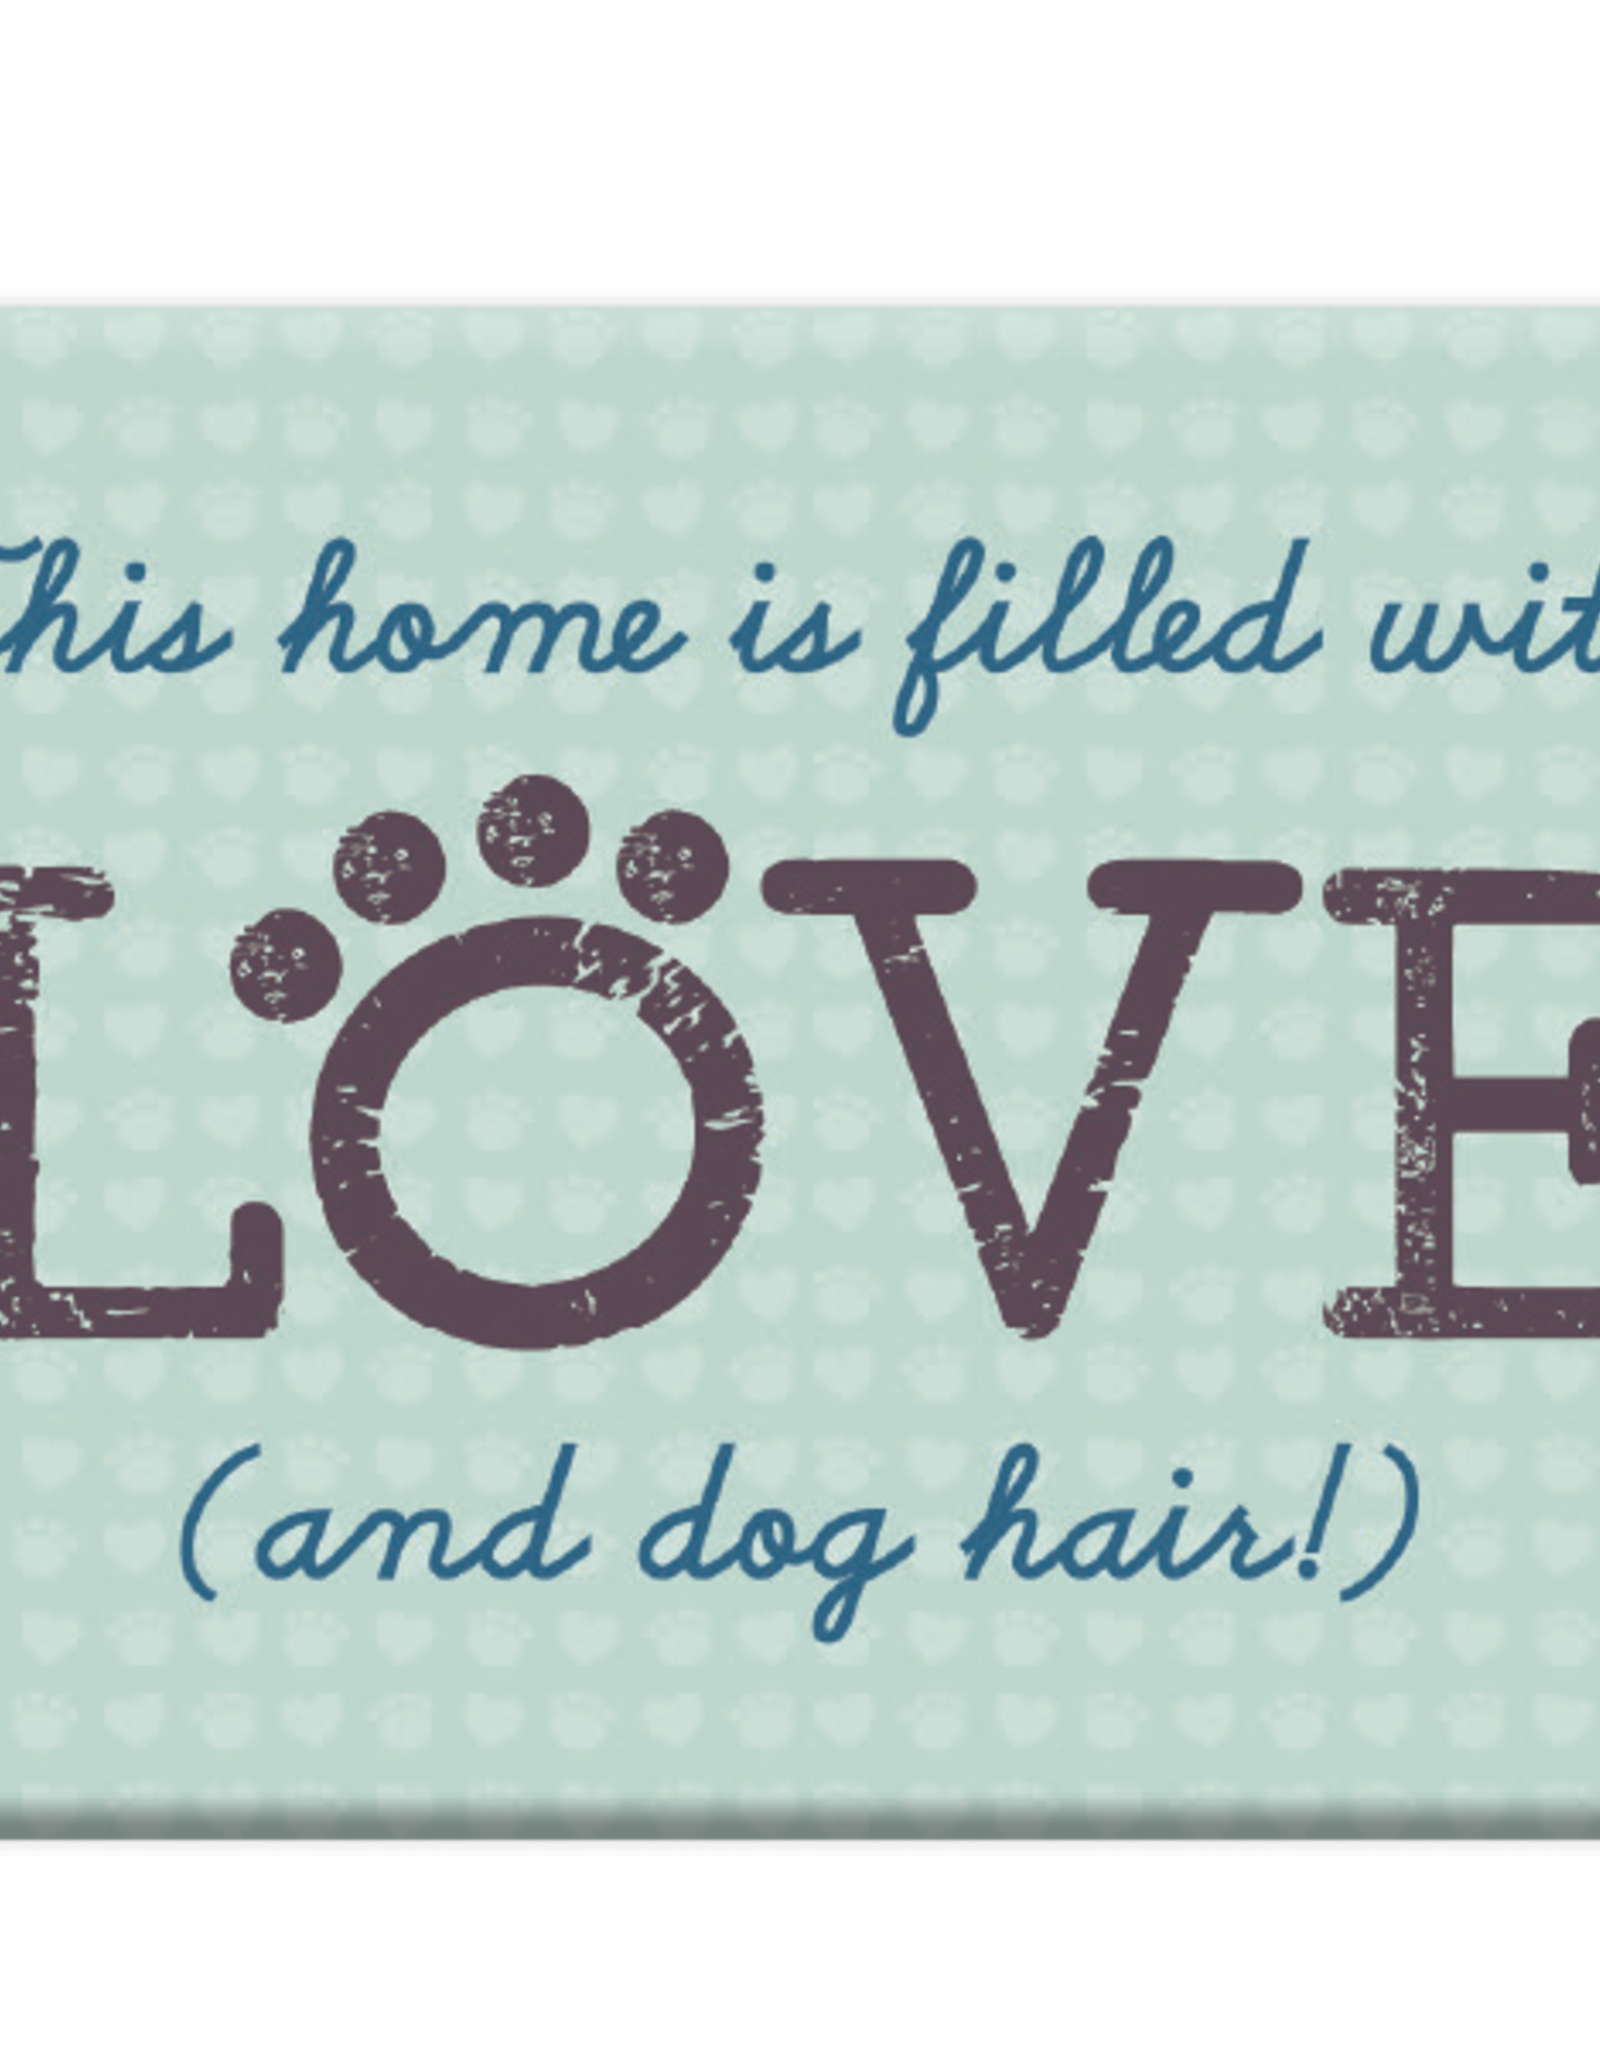 Dog Speak Dog Speak Refrigerator Magnet - This Home is Filled with LOVE! (and dog hair)